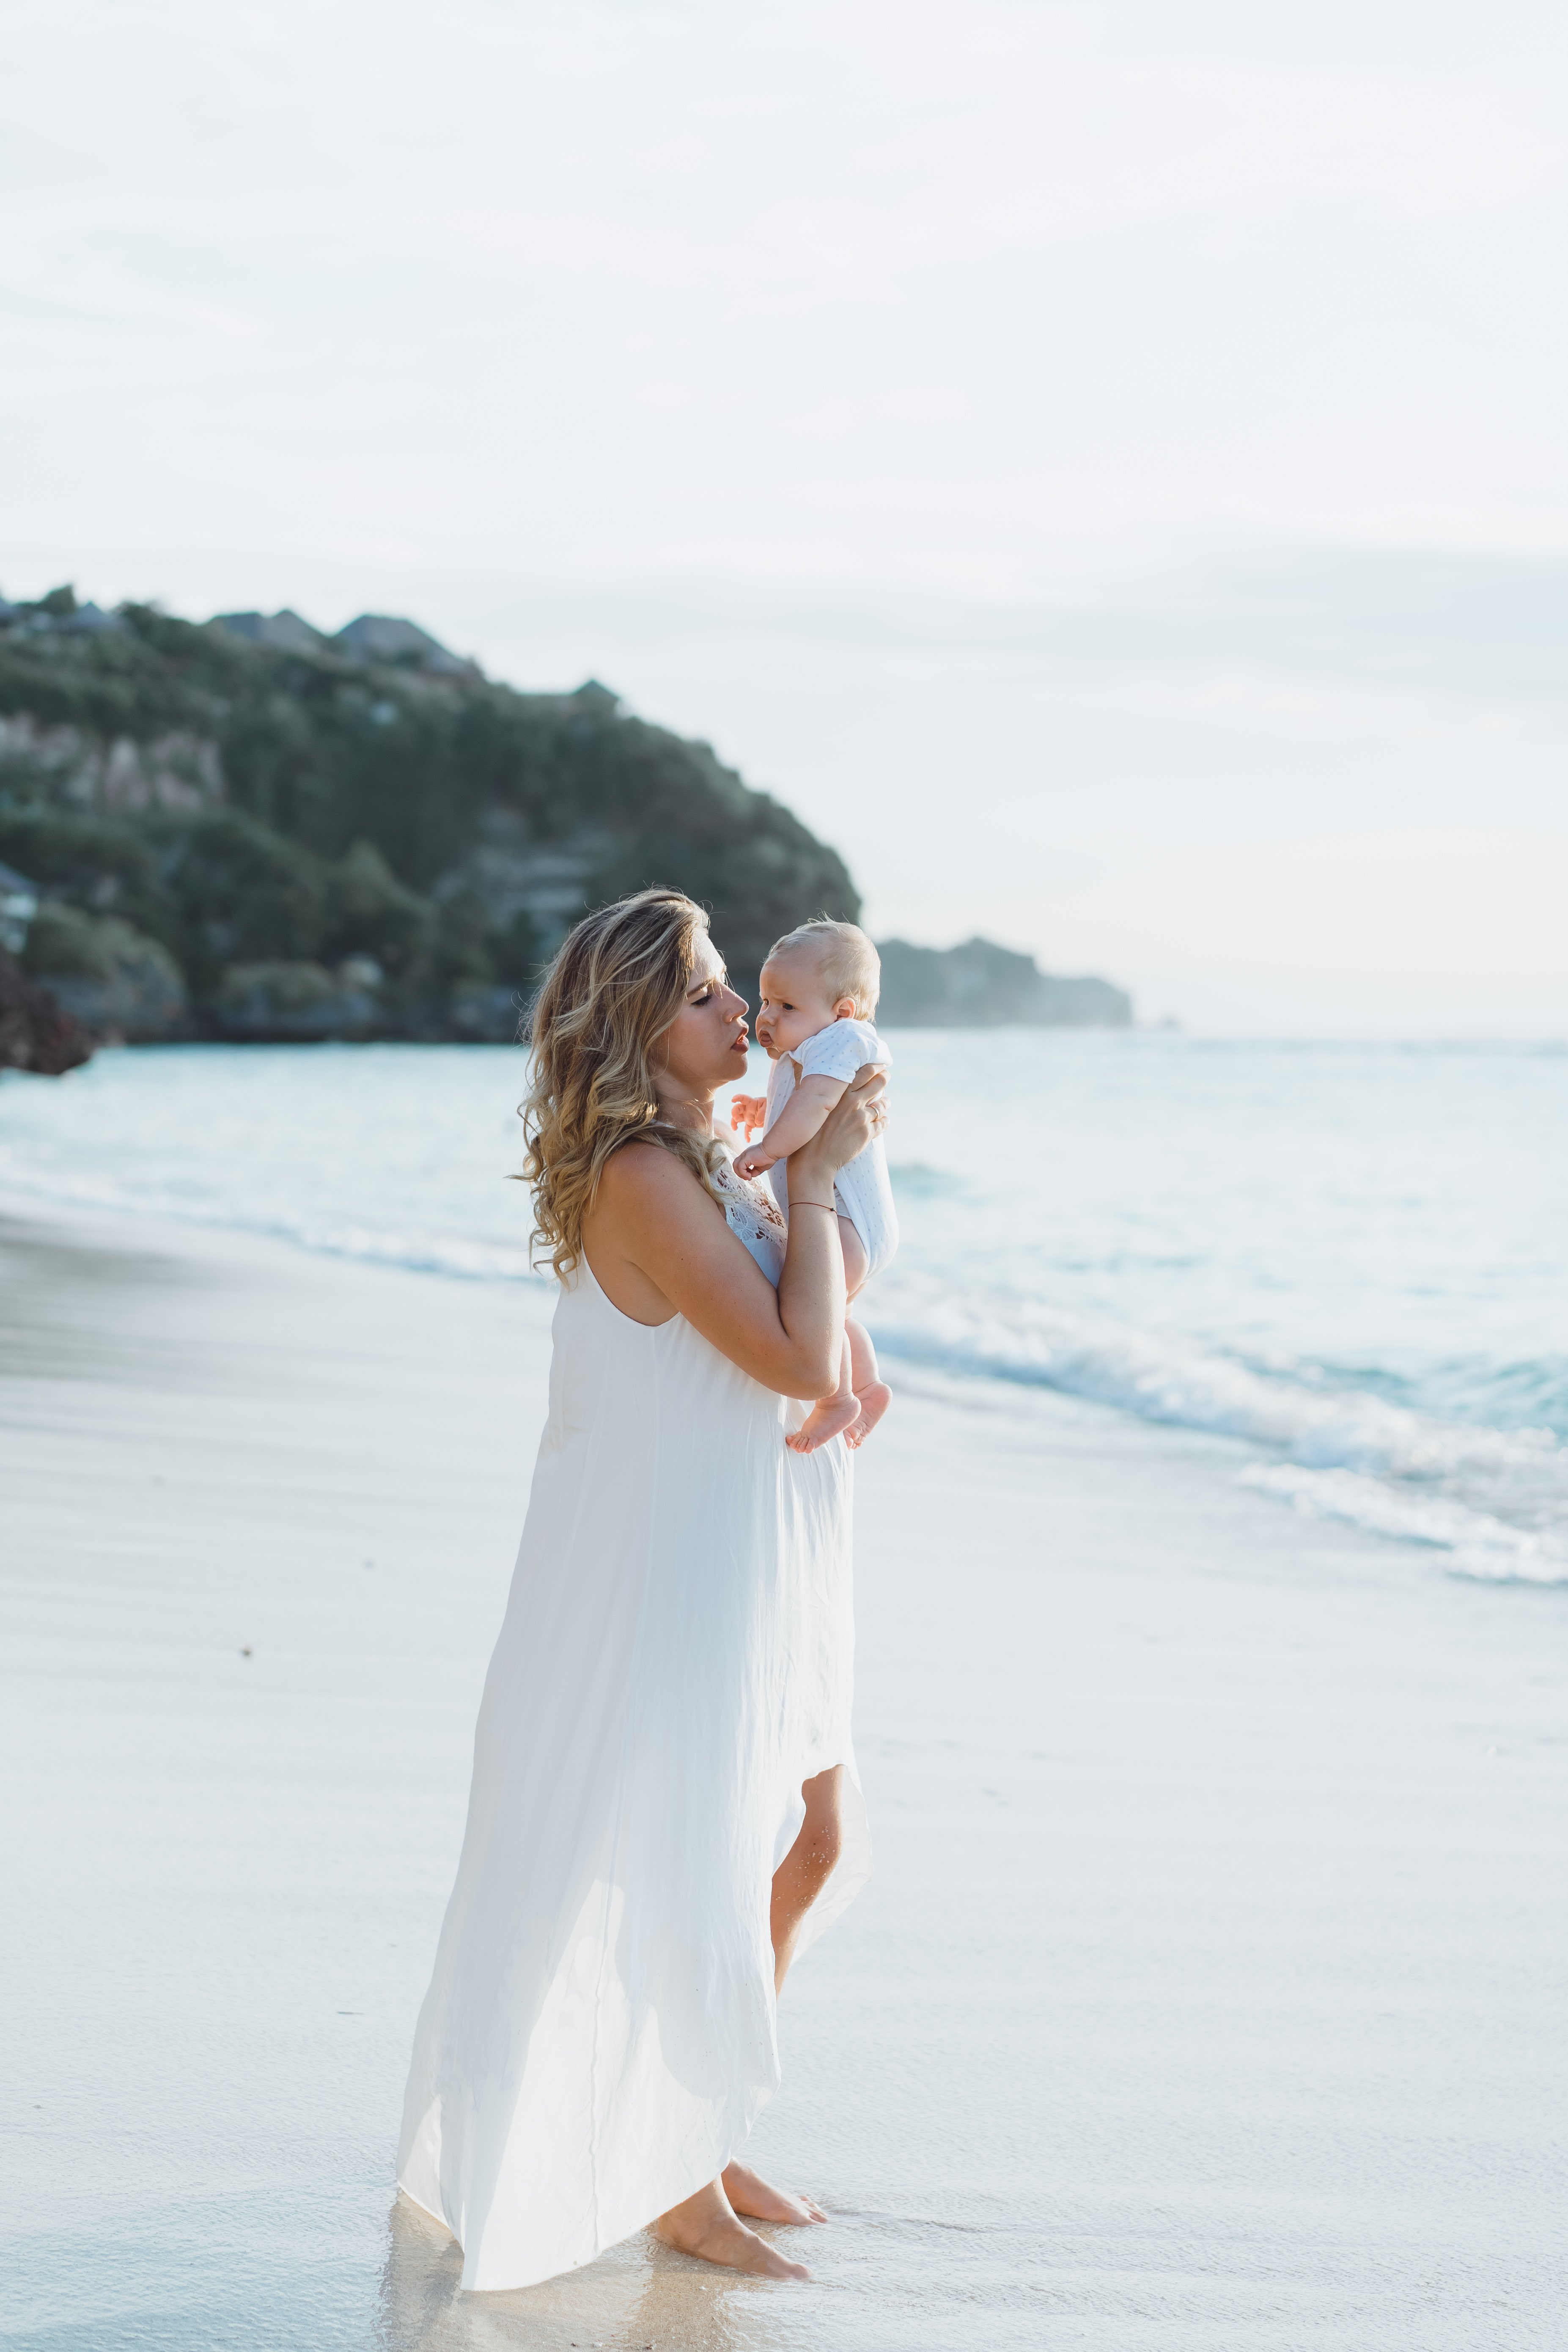 To the mom who thinks she's not good enough